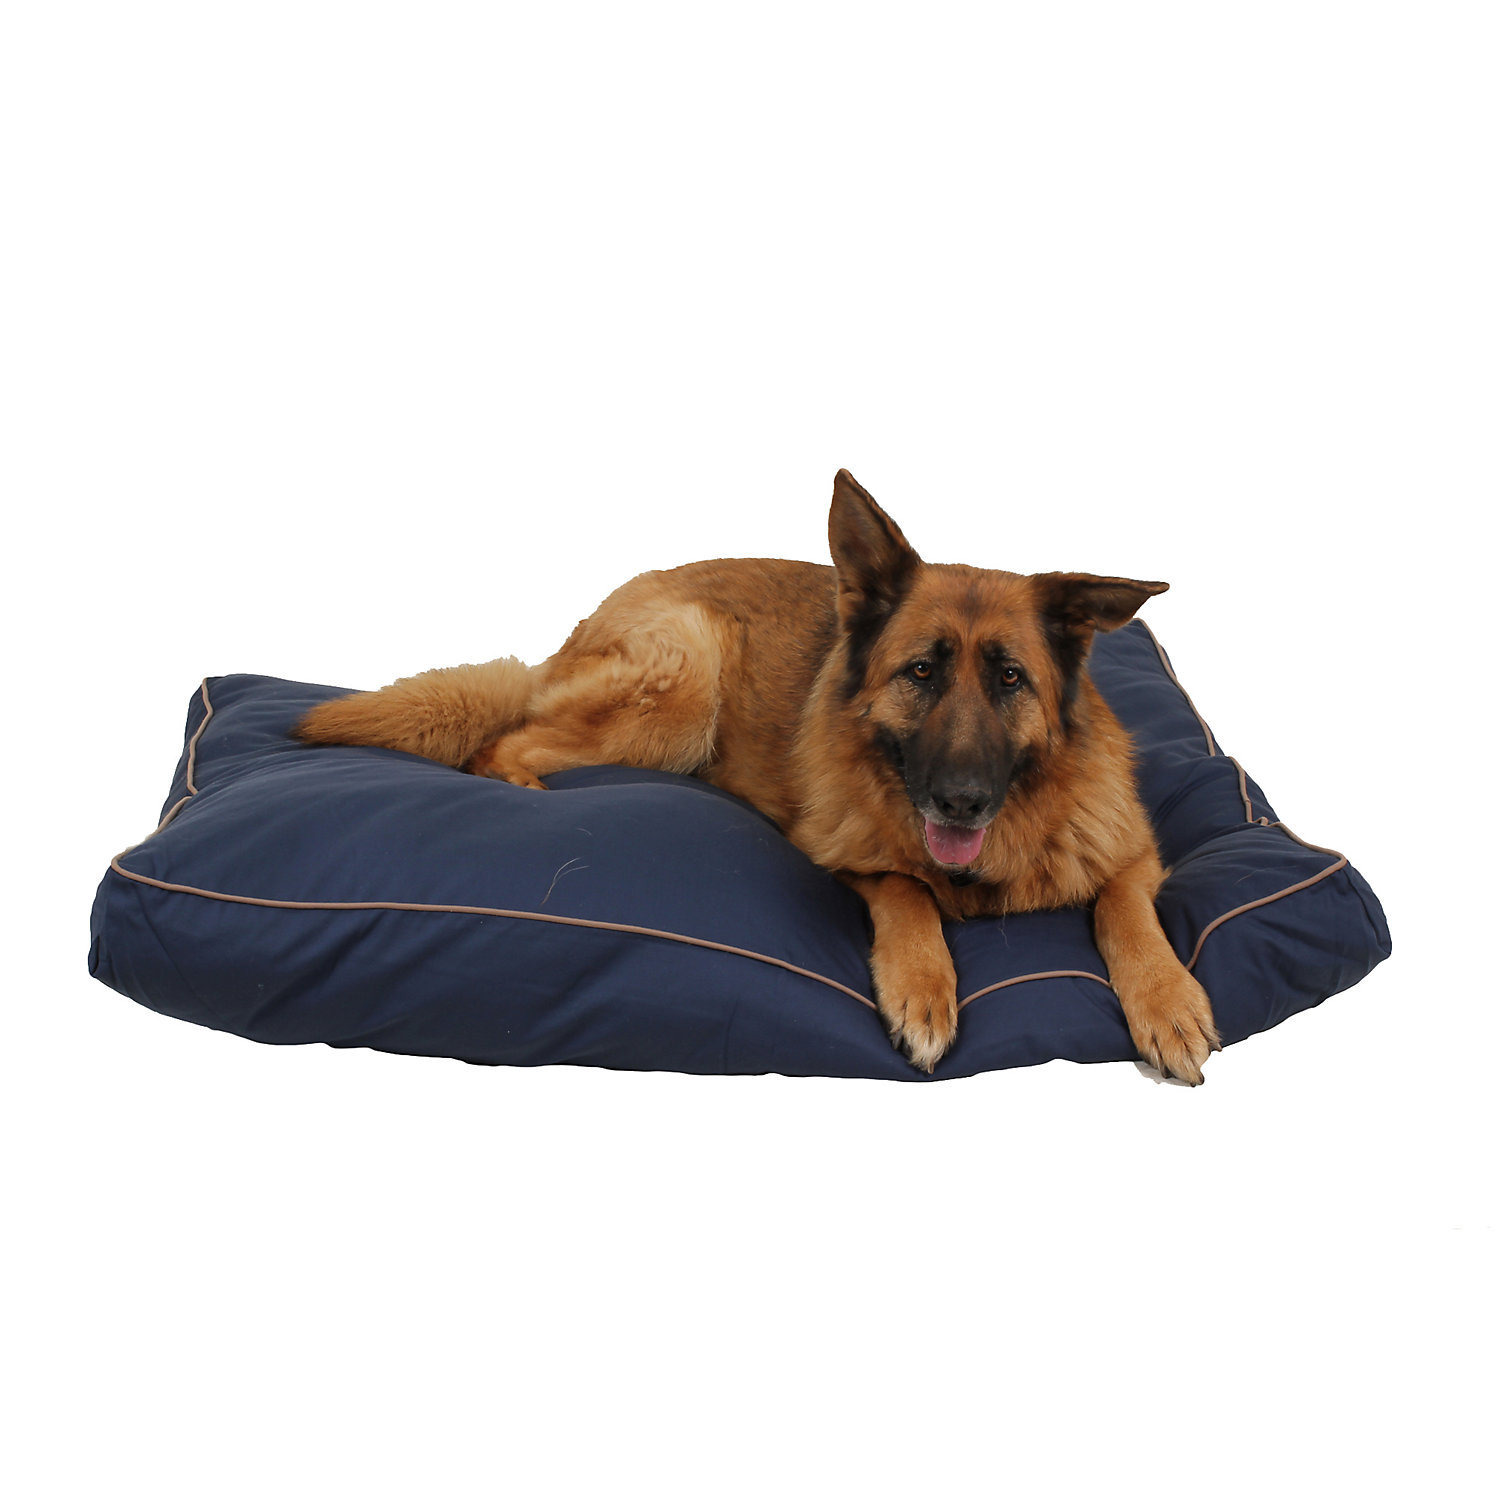 "Carolina Pet Company Indoor Outdoor Jamison Blue Faux Gusset Dog Bed, 36"" L X 27"" W X 4"" H, Large"